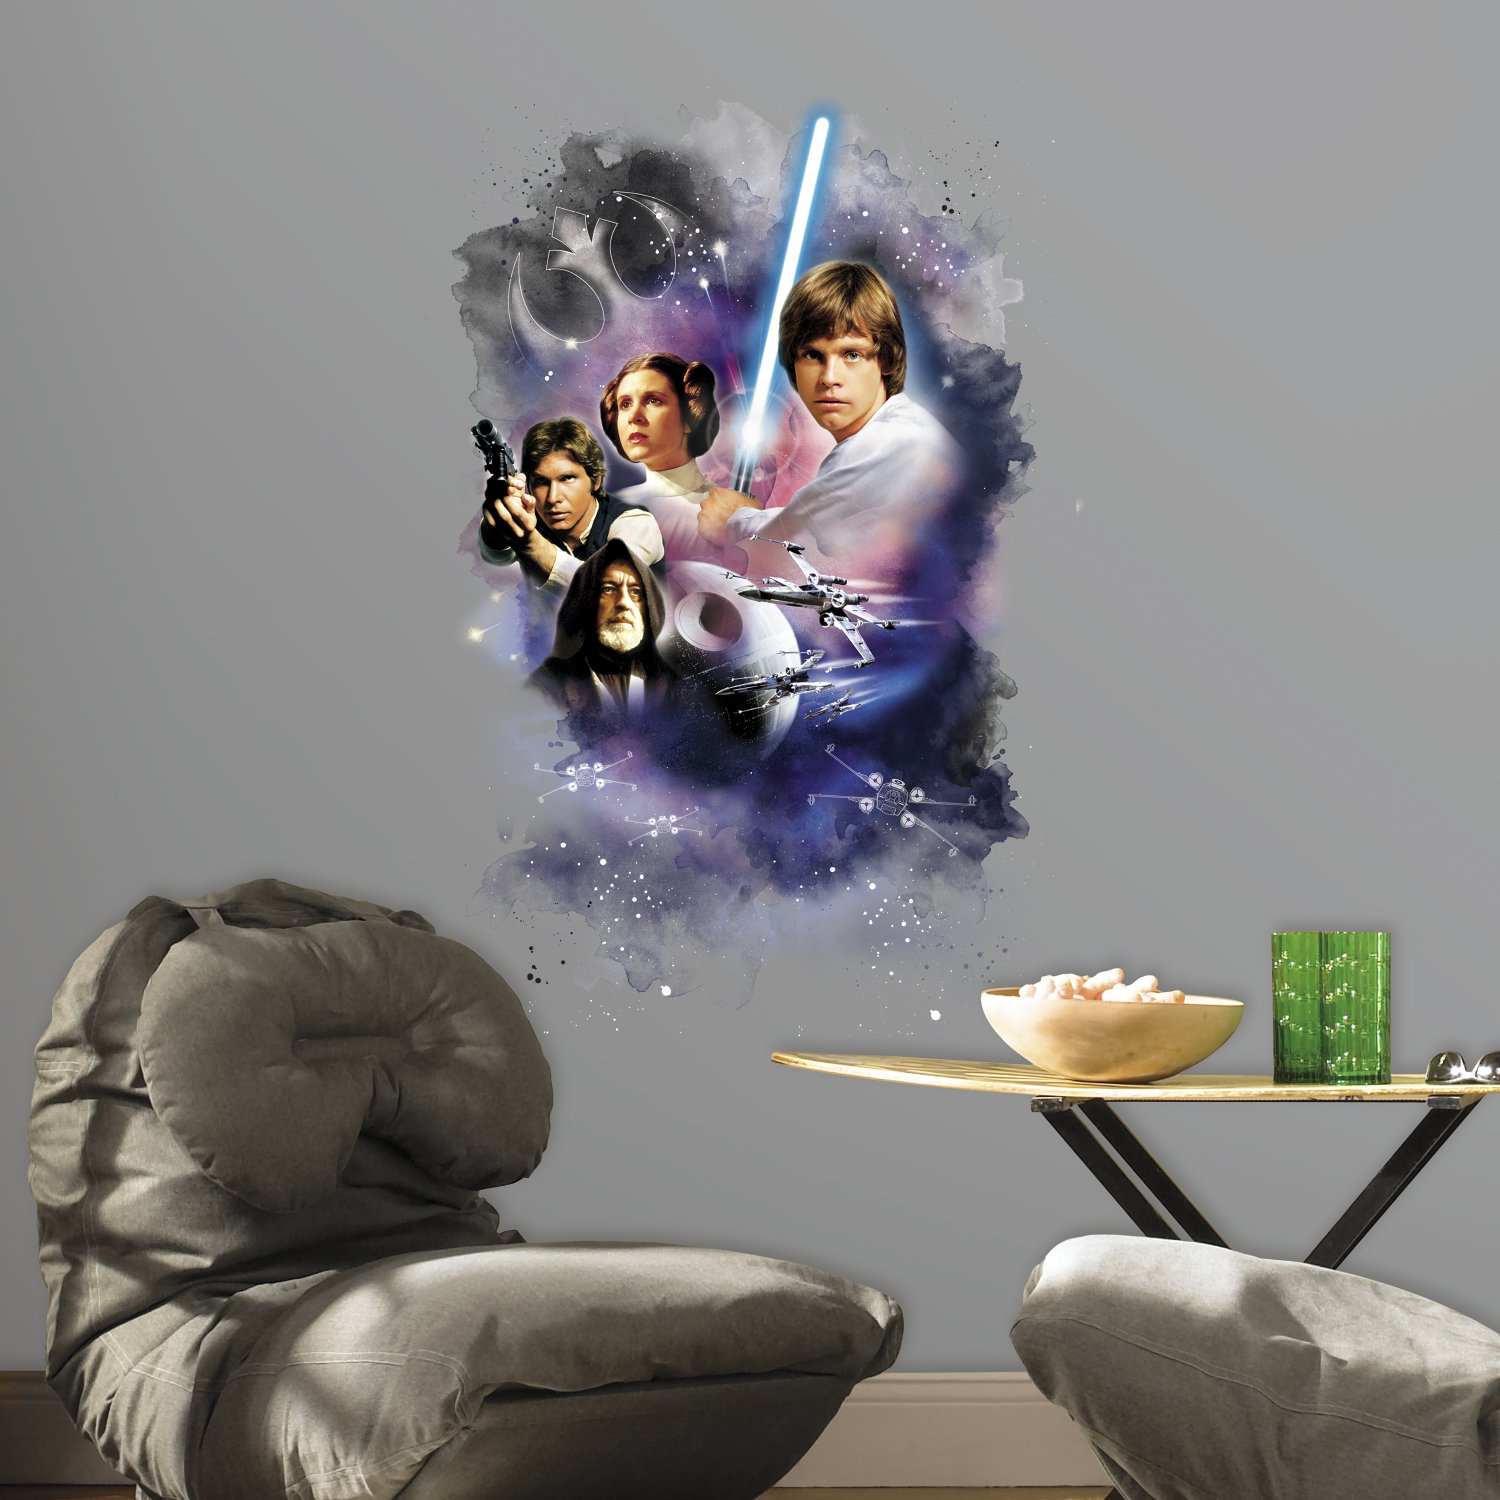 Thedecofactory Stickers Star Wars Classic Graphic Géant Roommates Repositionnables (89x58cm) - Ado - Style : Ado 3WHRK RMK3026TB